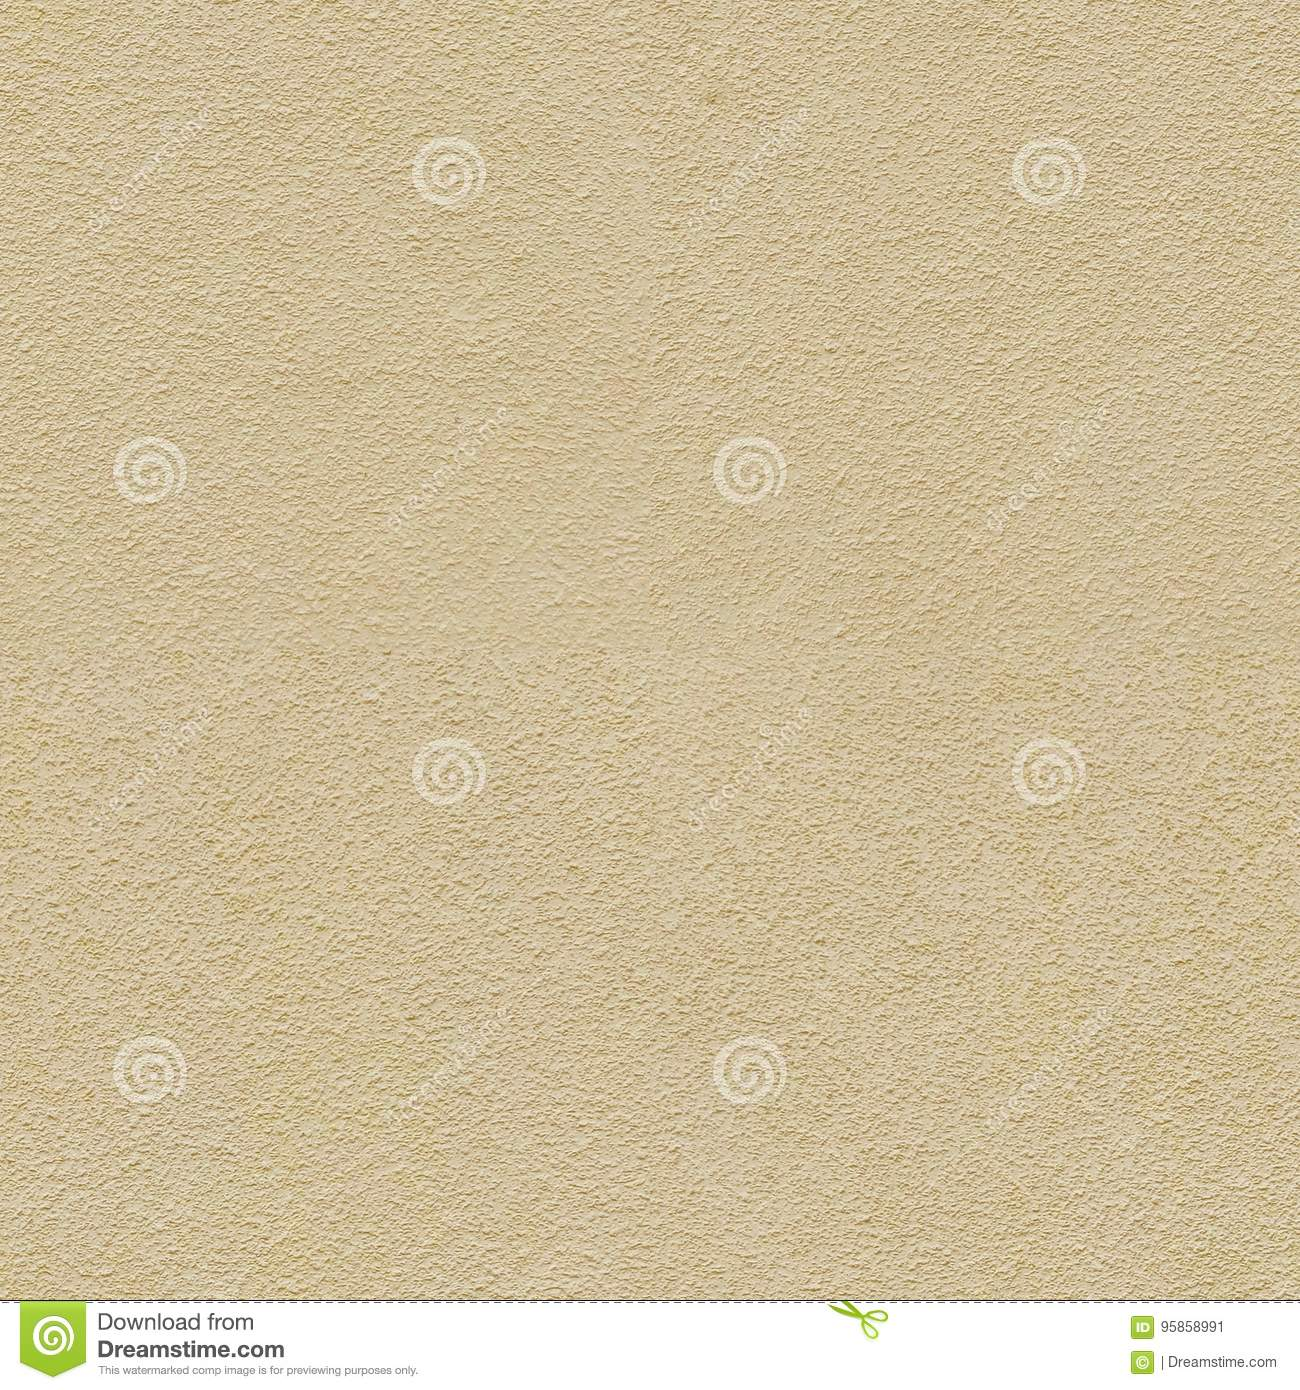 Outdoor Grunge Polished Concrete Texture Stock Image Image of